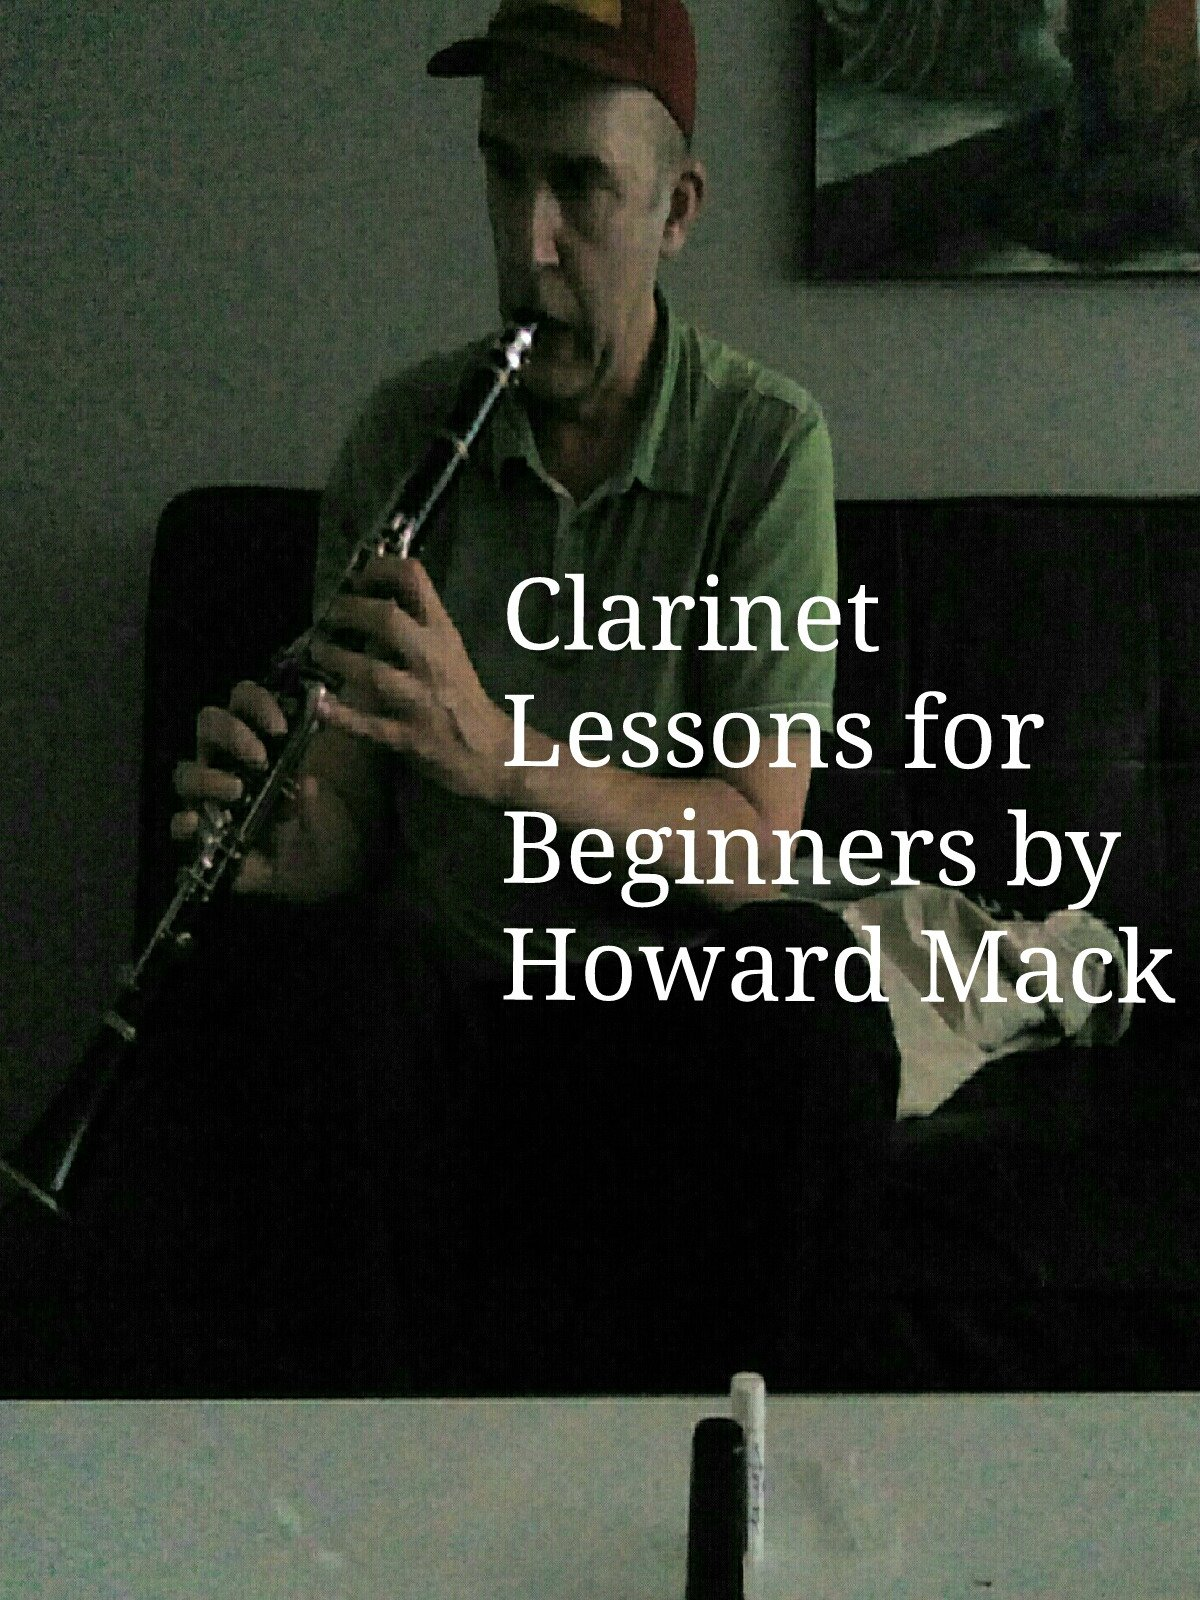 Clarinet Lessons for Beginners by Howard Mack